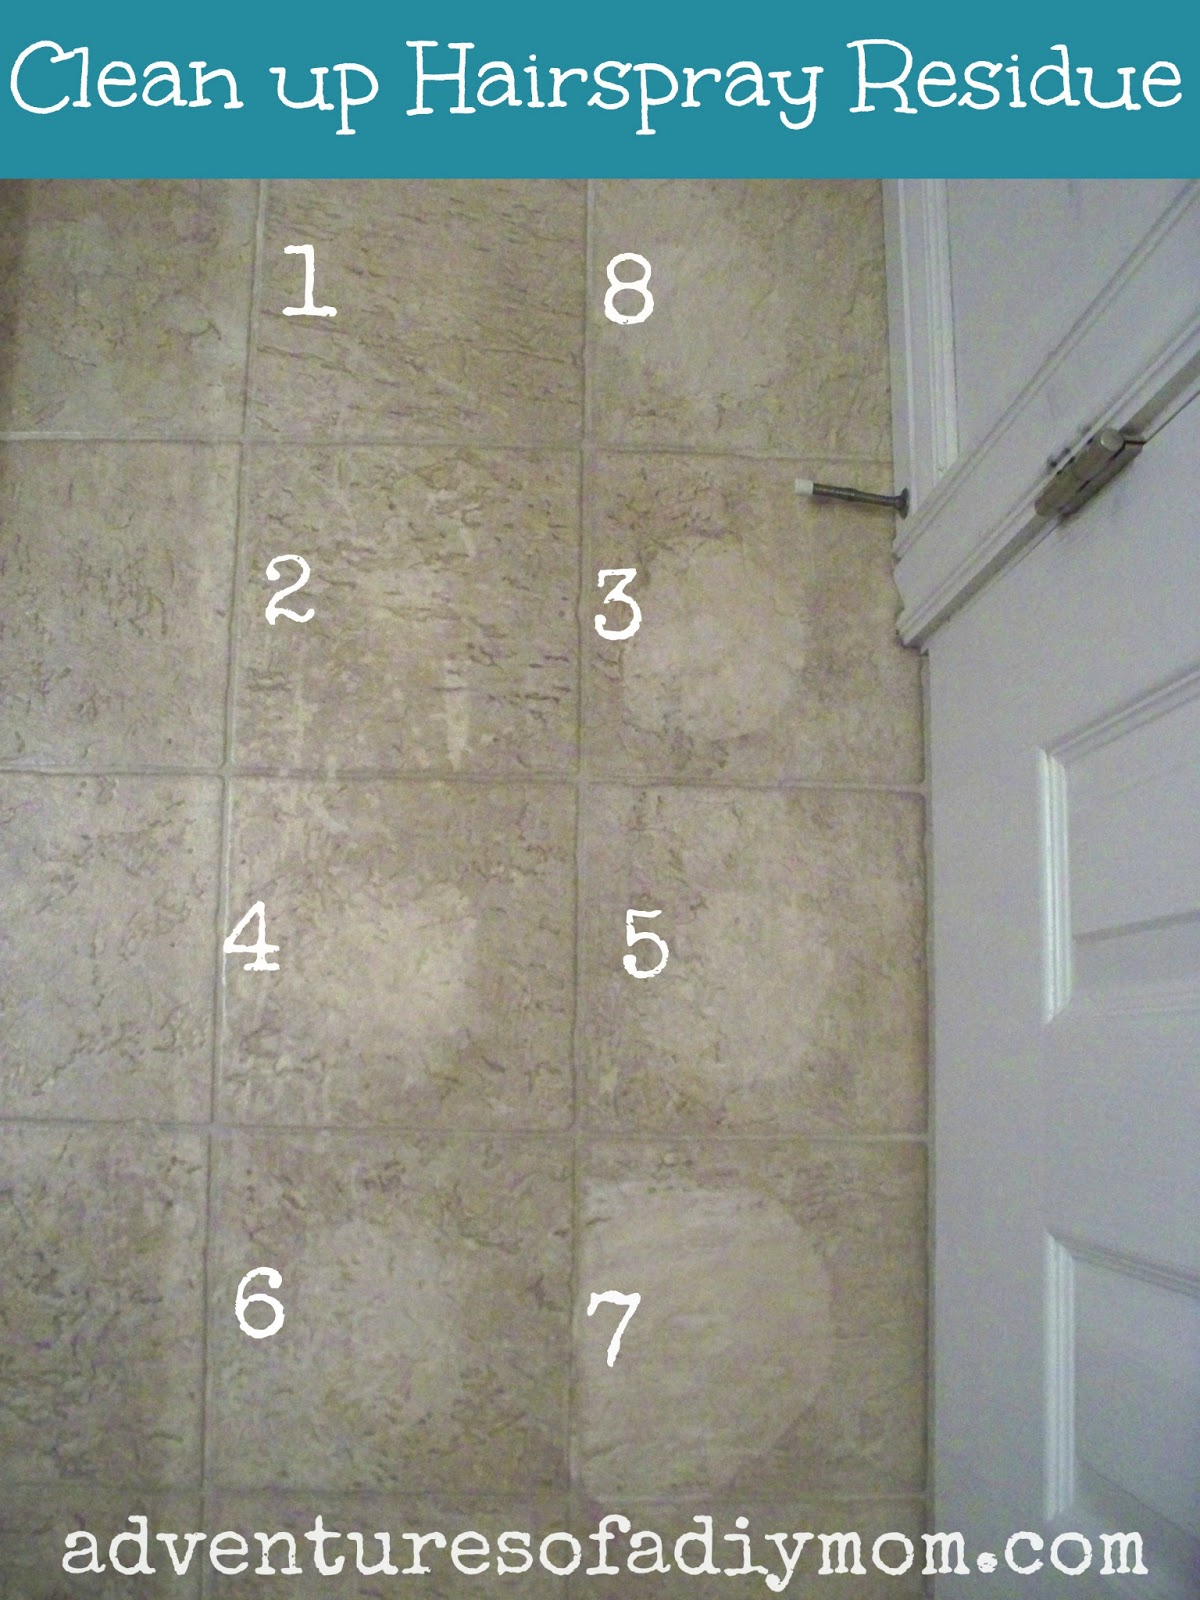 How To Remove Hairspray Residue From Floor Adventures Of A DIY Mom - Bathroom tiles cleaning tips